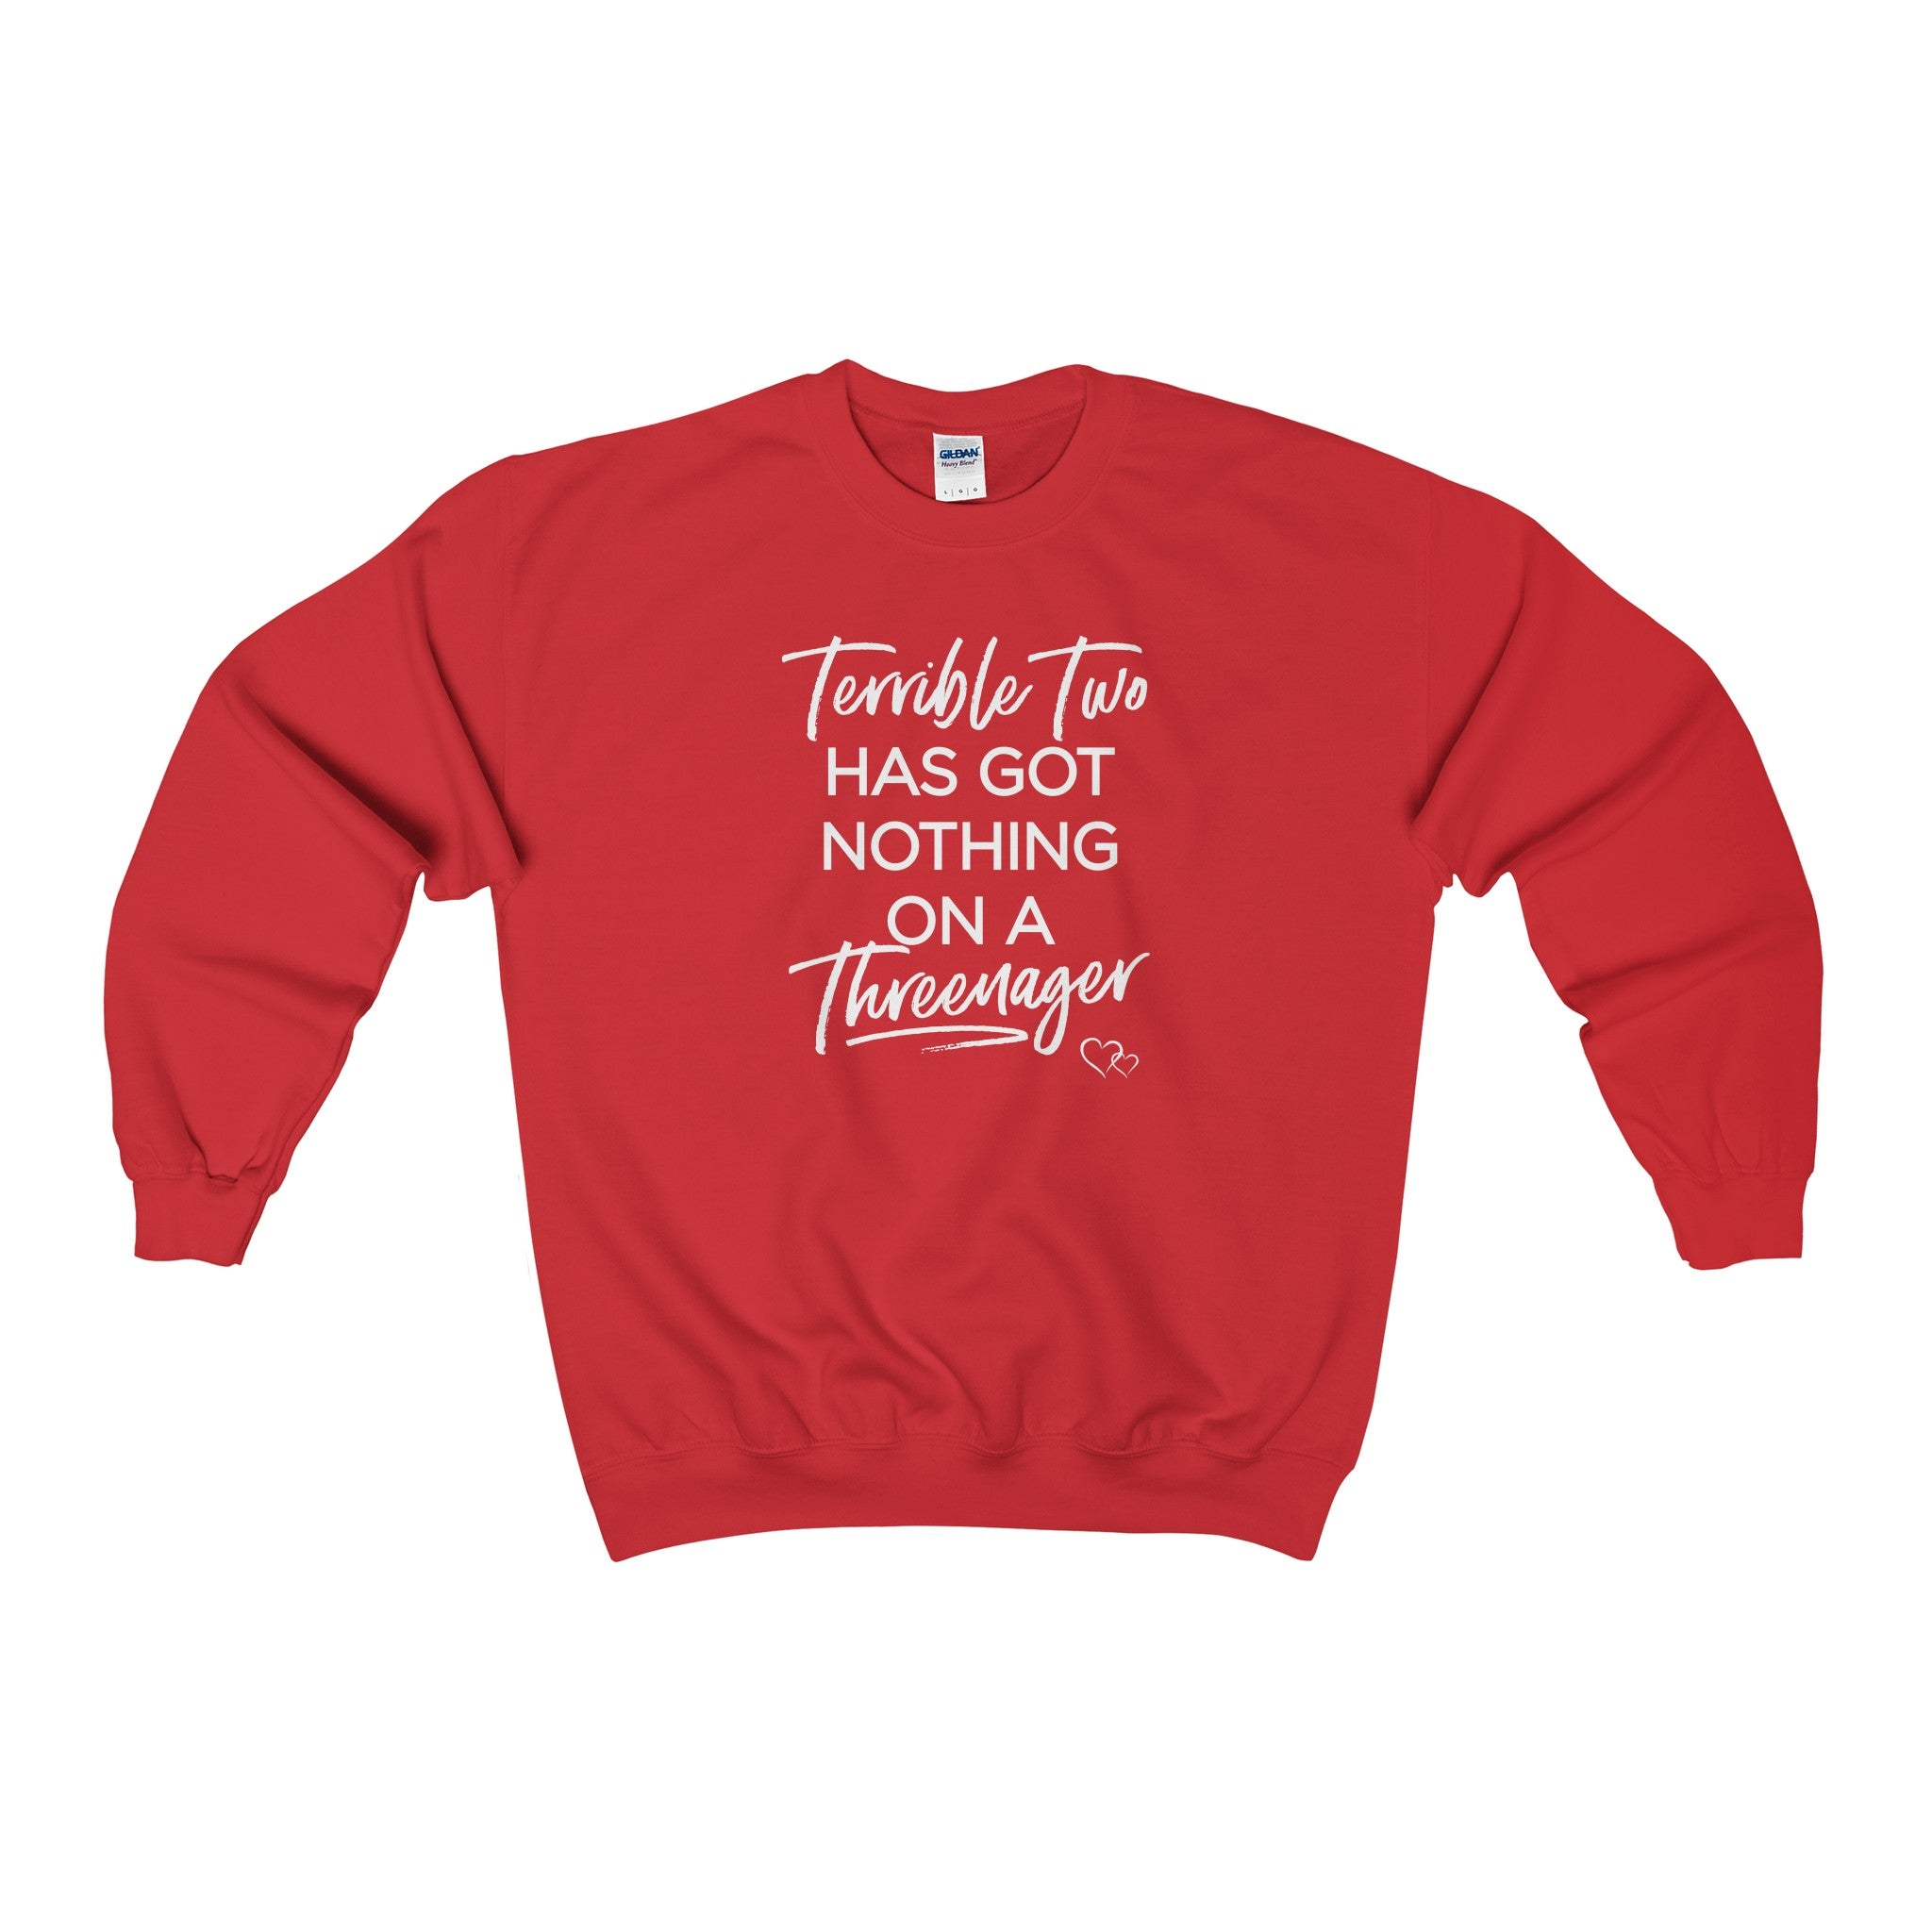 TERRIBLE TWO / THREENAGER - Sweatshirt (Unisex)